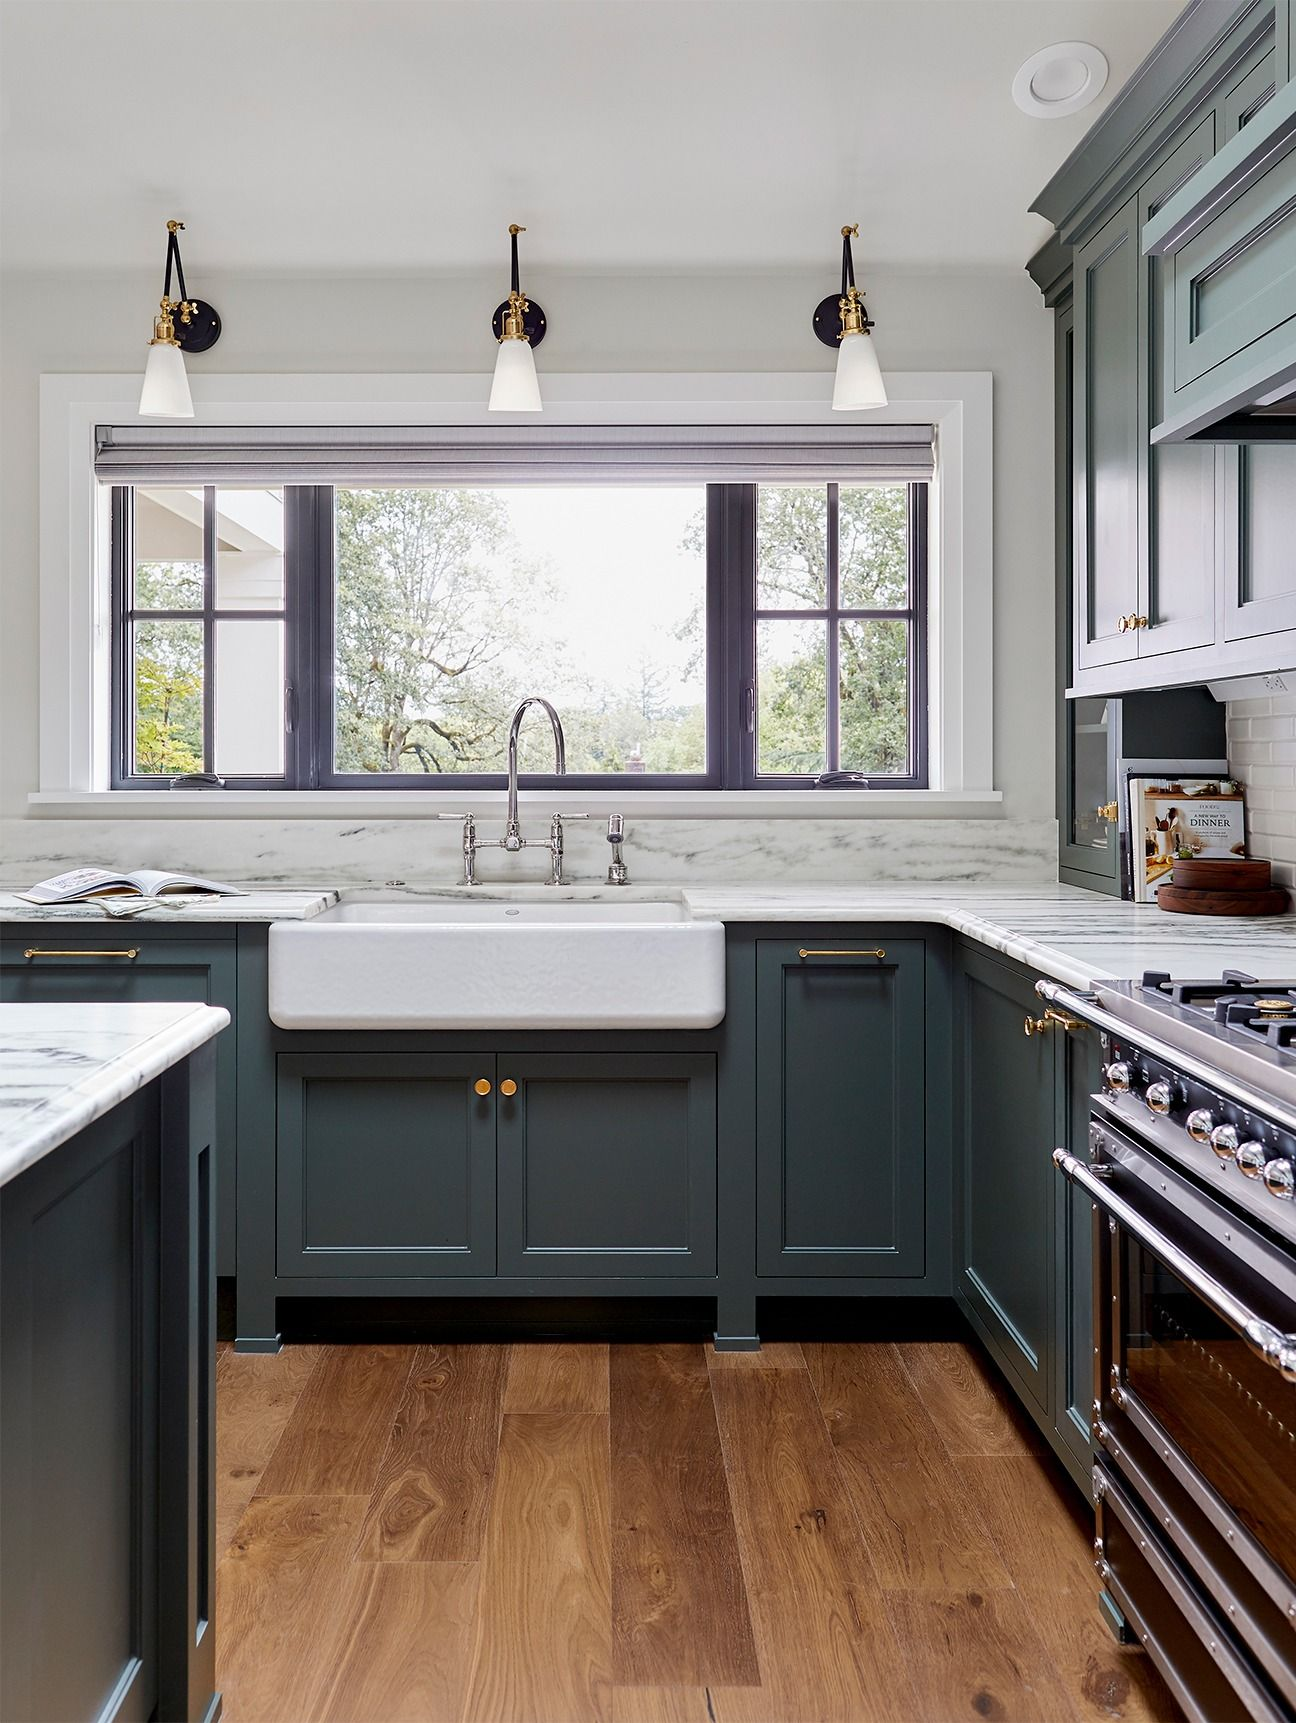 11 Shaker Kitchen Cabinet Ideas That Put A Twist On The Classic Style In 2020 New Kitchen Cabinets Kitchen Remodel Kitchen Design